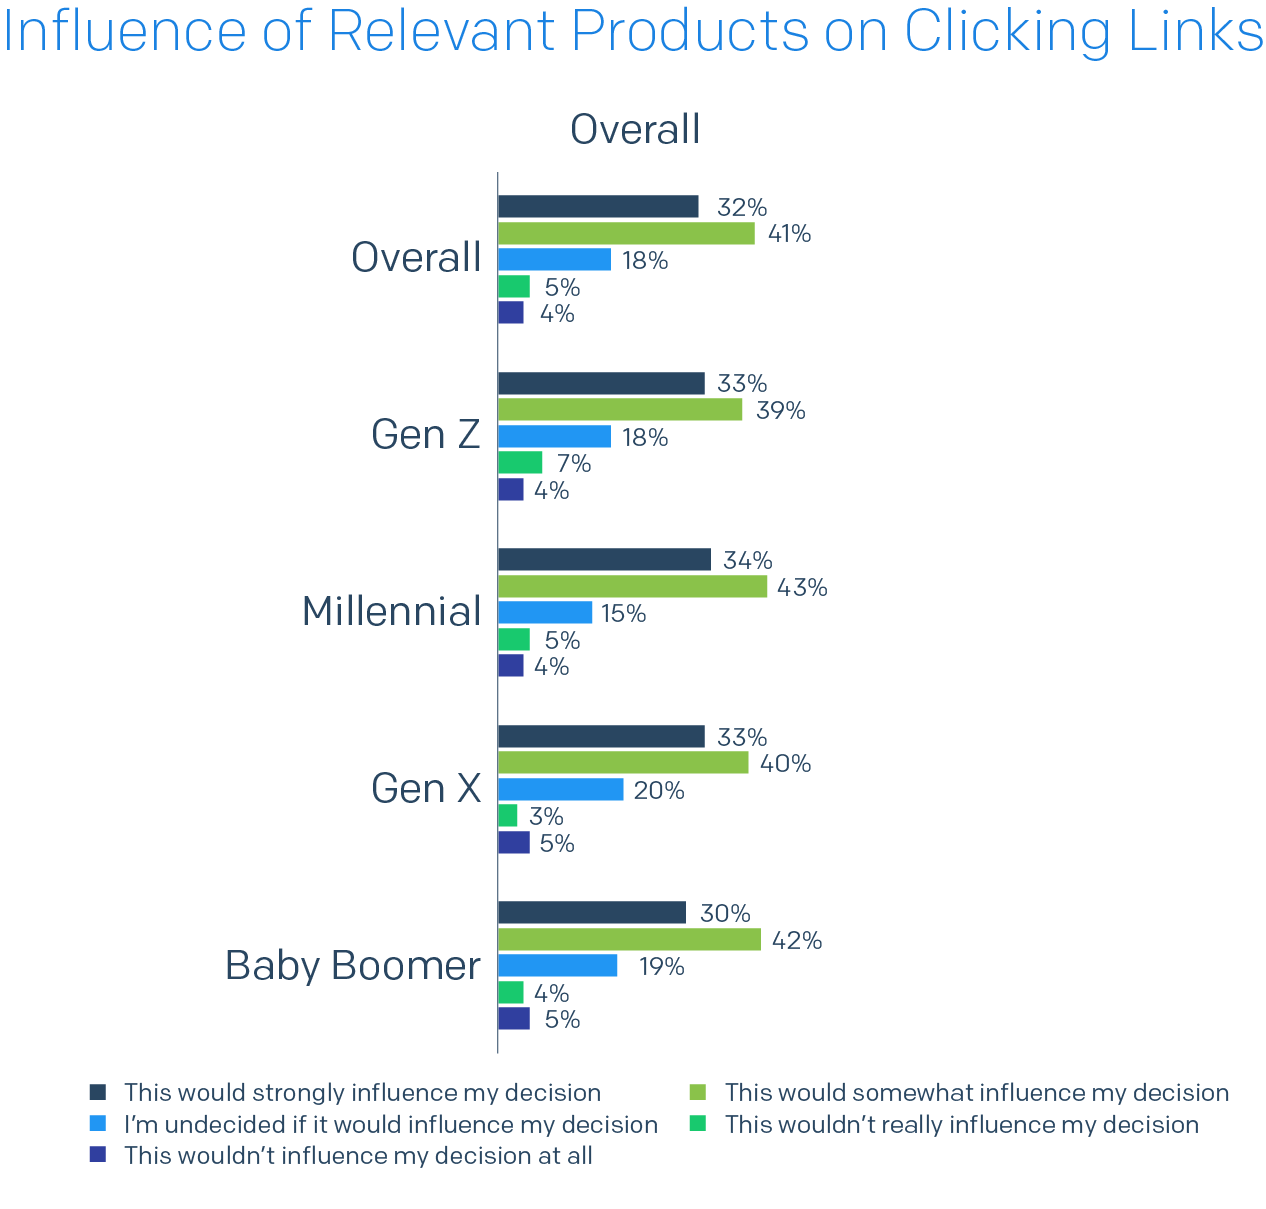 Bar chart of Influence of Relevant Products on Clicking Links